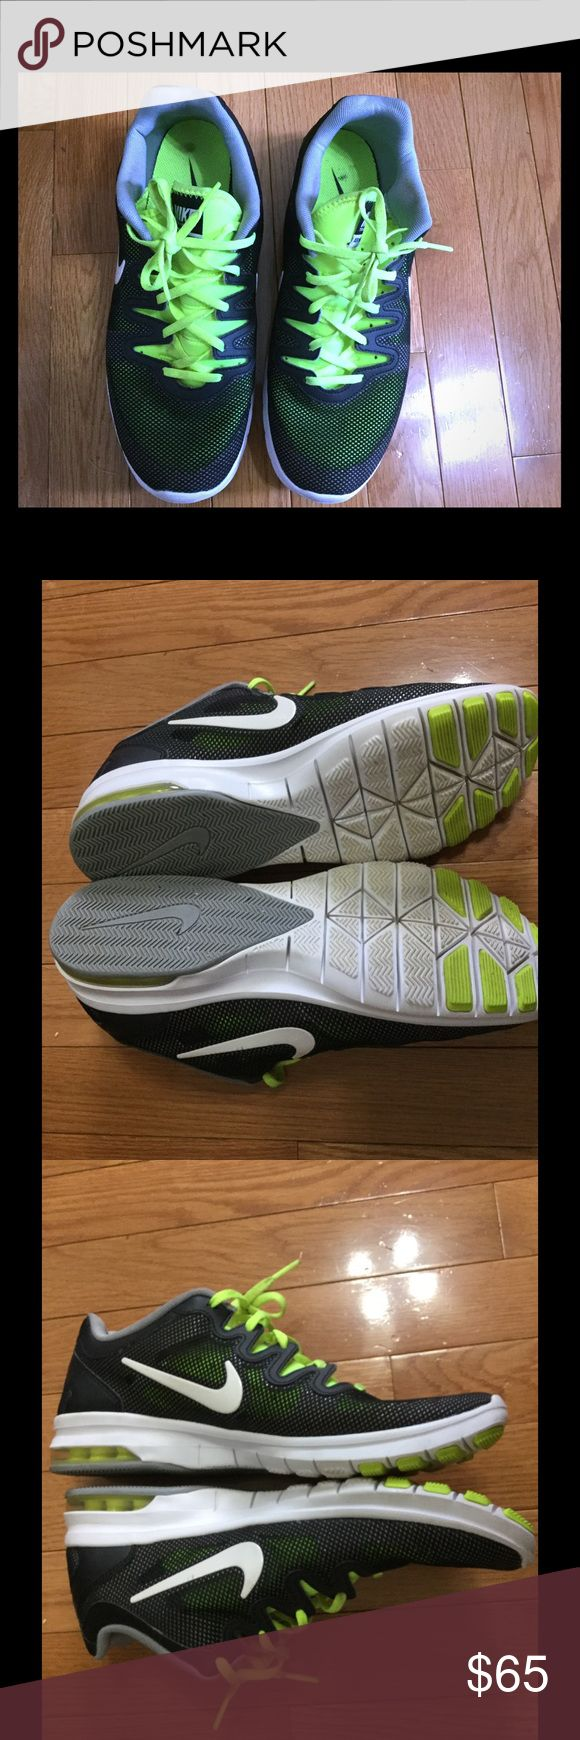 Nike training Air Max a Fusion Airm max training mesh. Wore about 10x.. Please if you have any question don't hesitate to ask. If interested please make an offer thru offer button. NO TRADES. thank you! Nike Shoes Sneakers